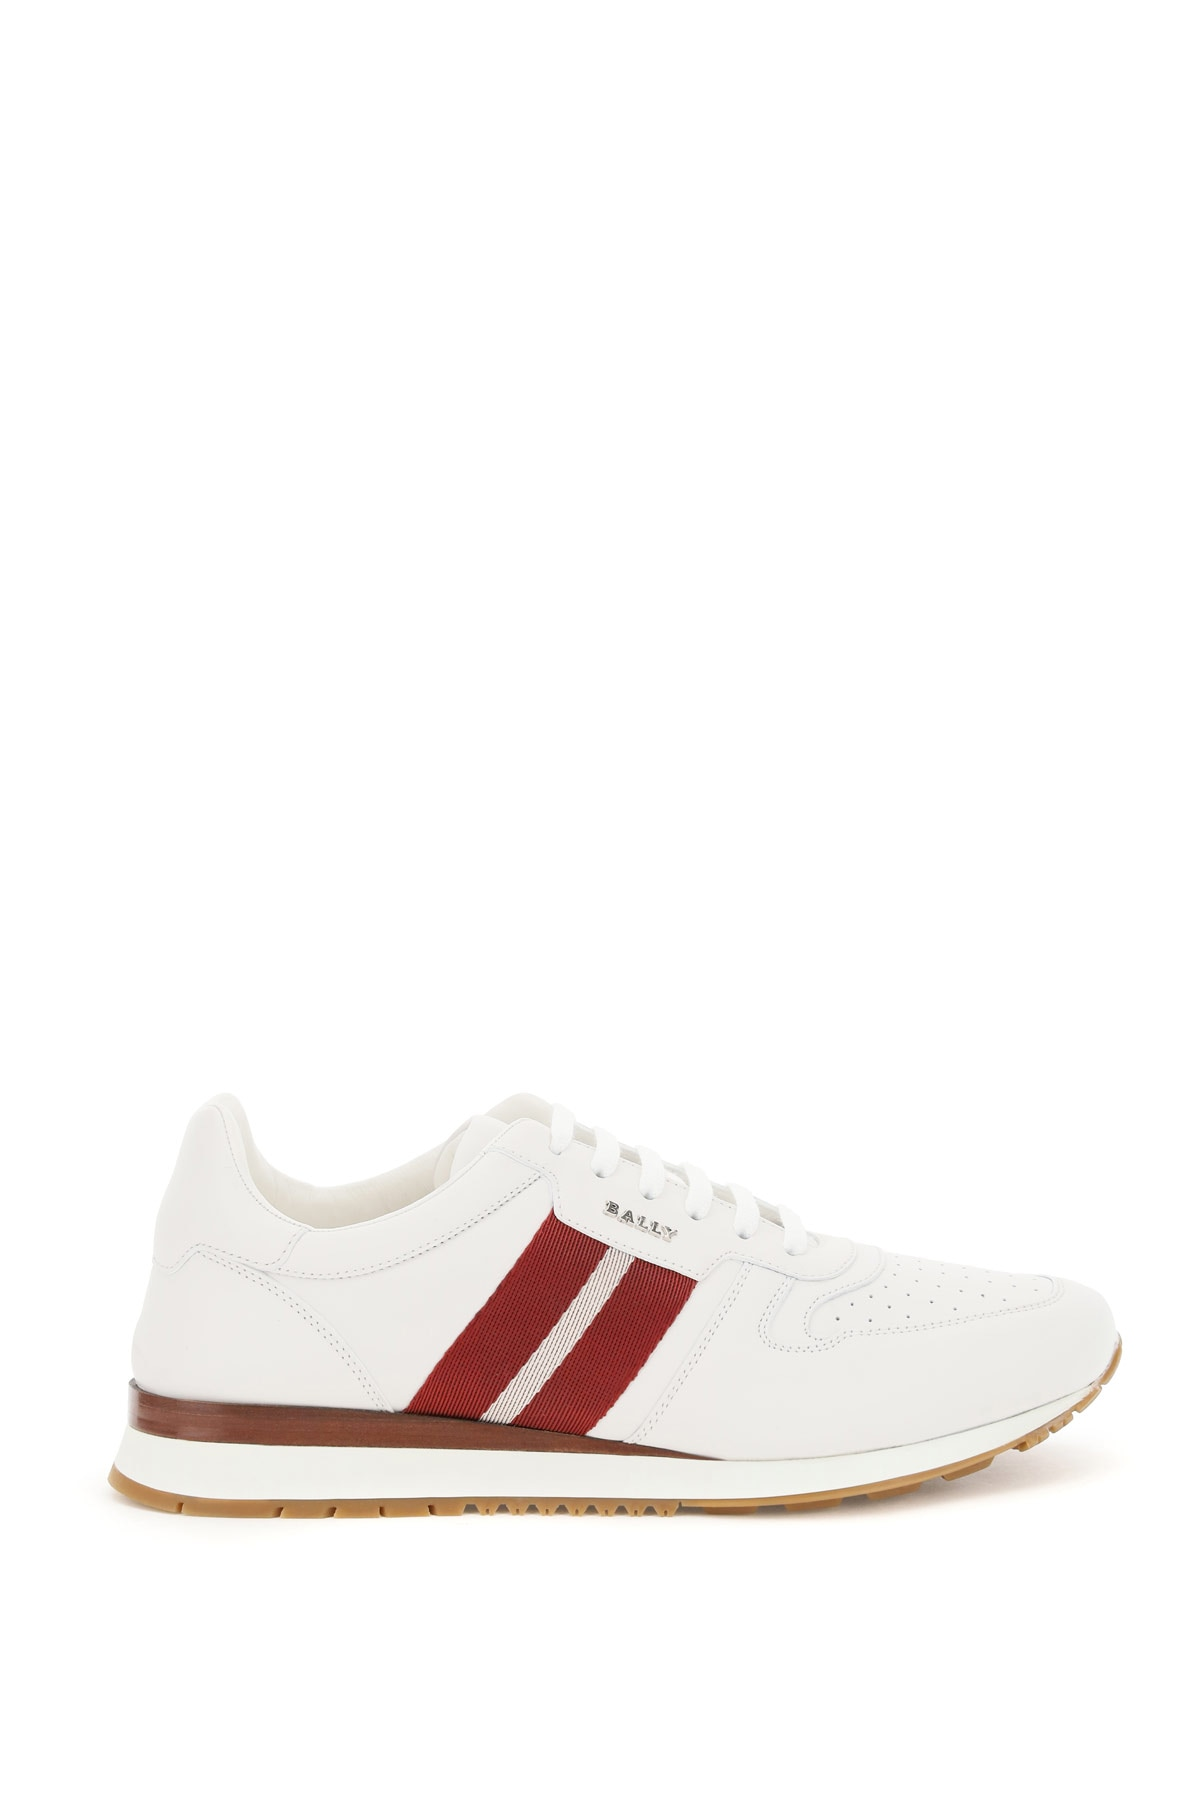 BALLY ASTEL SNEAKERS 7 White, Red Leather